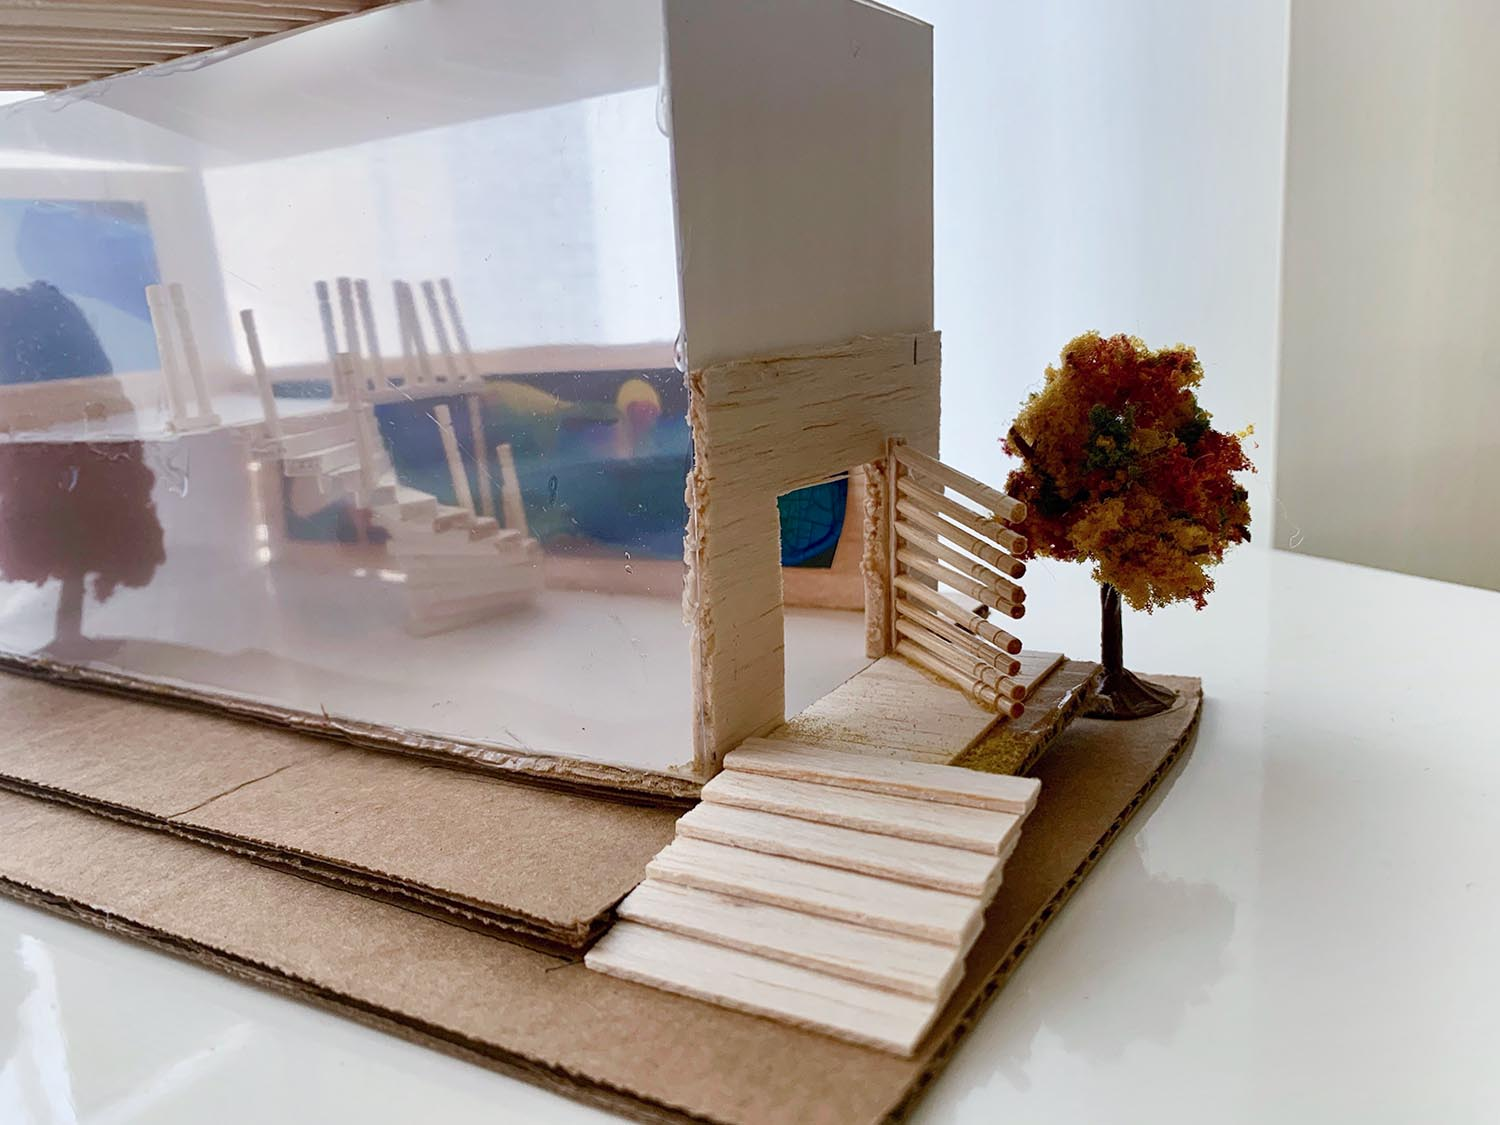 Jessica Simonis: Home #1, 2020, Balsa Wood, Cardboard, Canvas, Clay, Acetate Sheets, 20x13 inches.